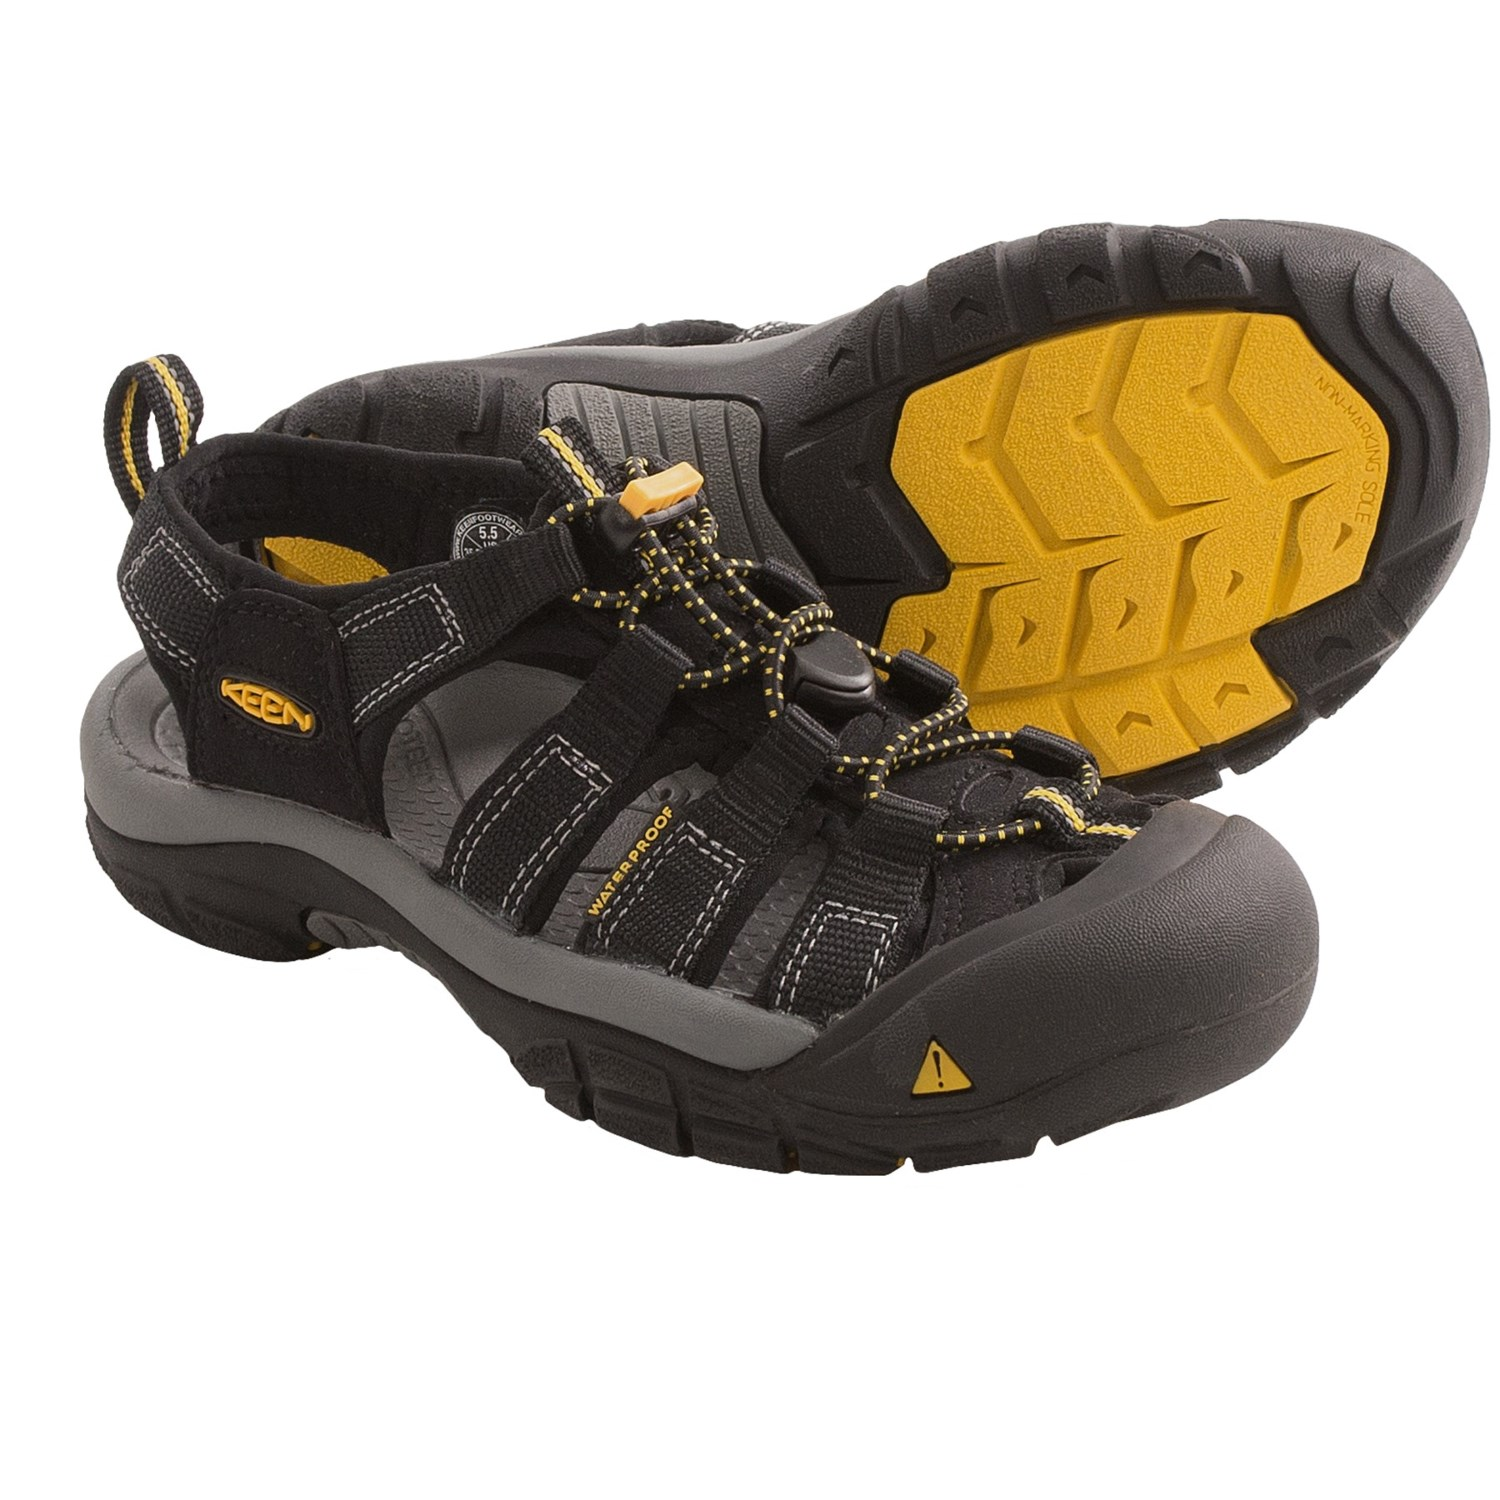 Keen Newport H2 Sandals Outdoor Sandals